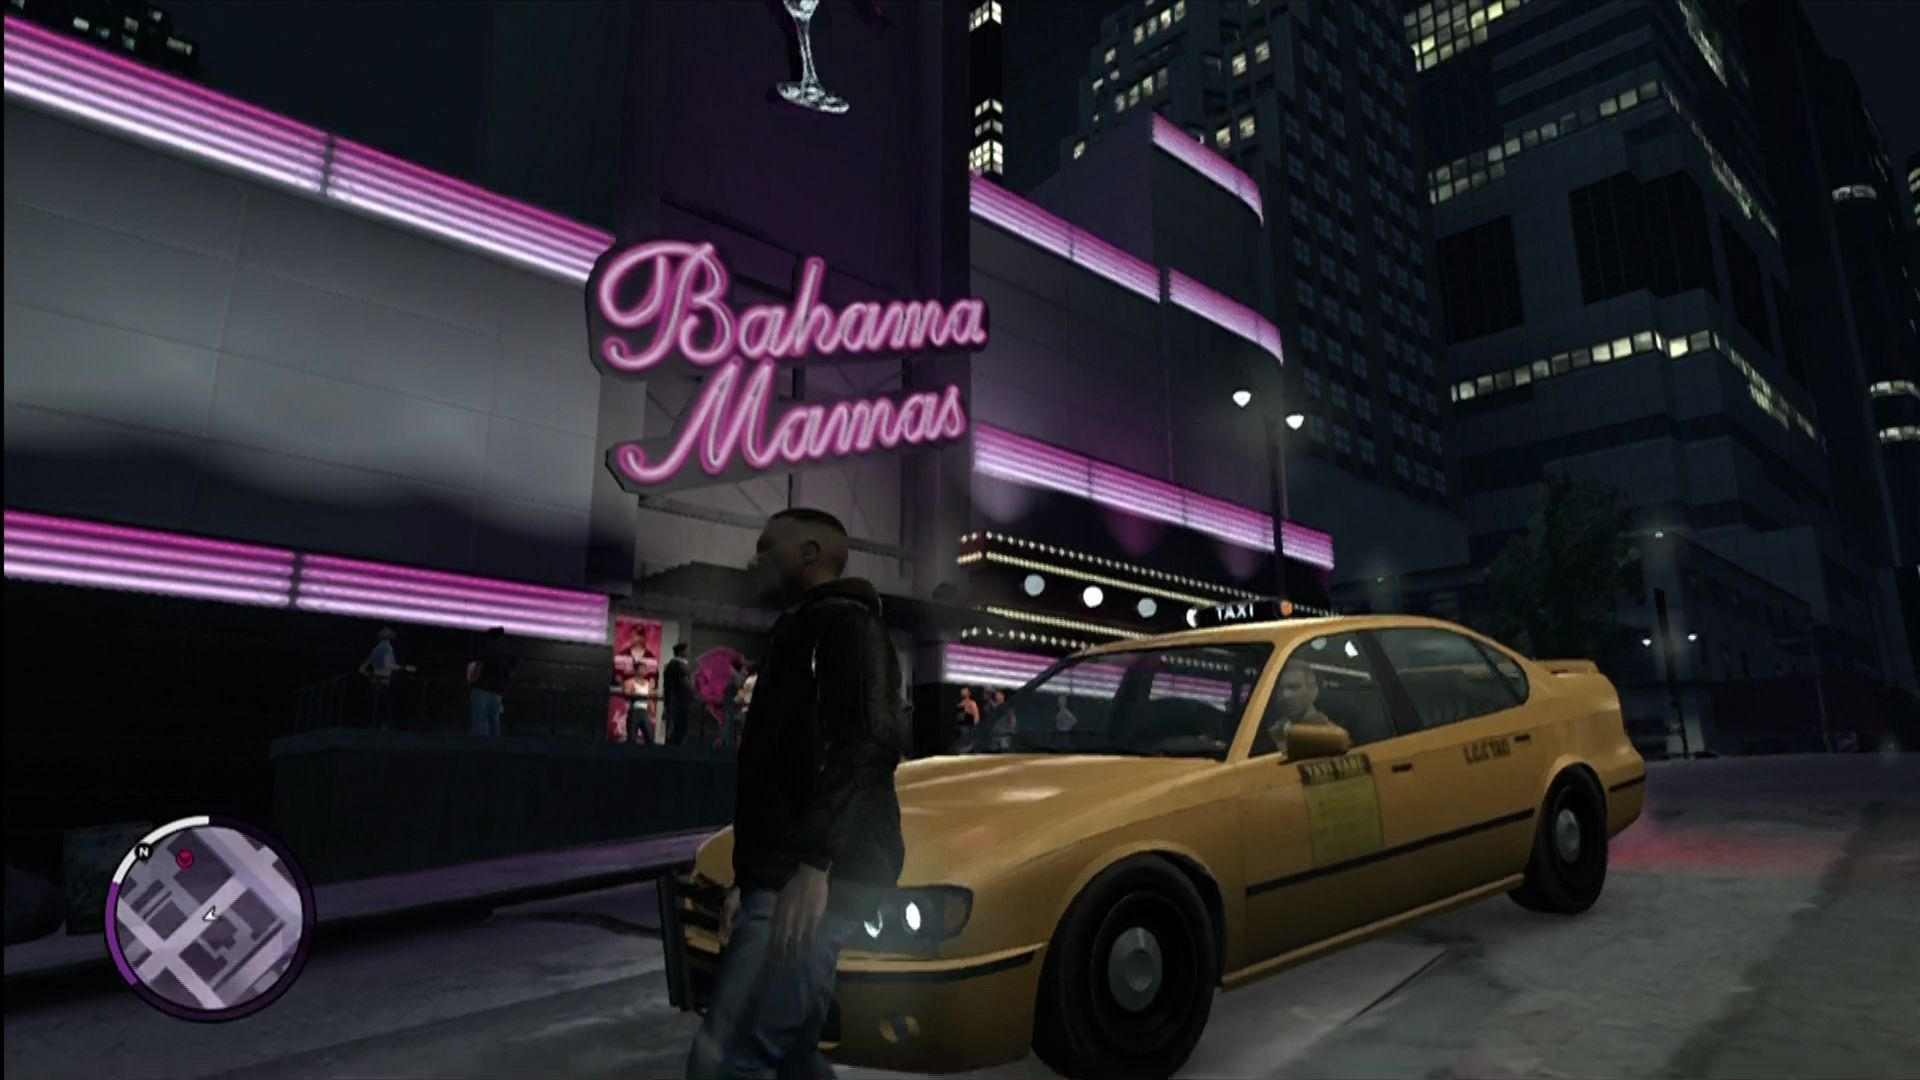 Grand Theft Auto: The Ballad of Gay Tony Xbox 360 Ballad adds new nightclubs to Liberty City.